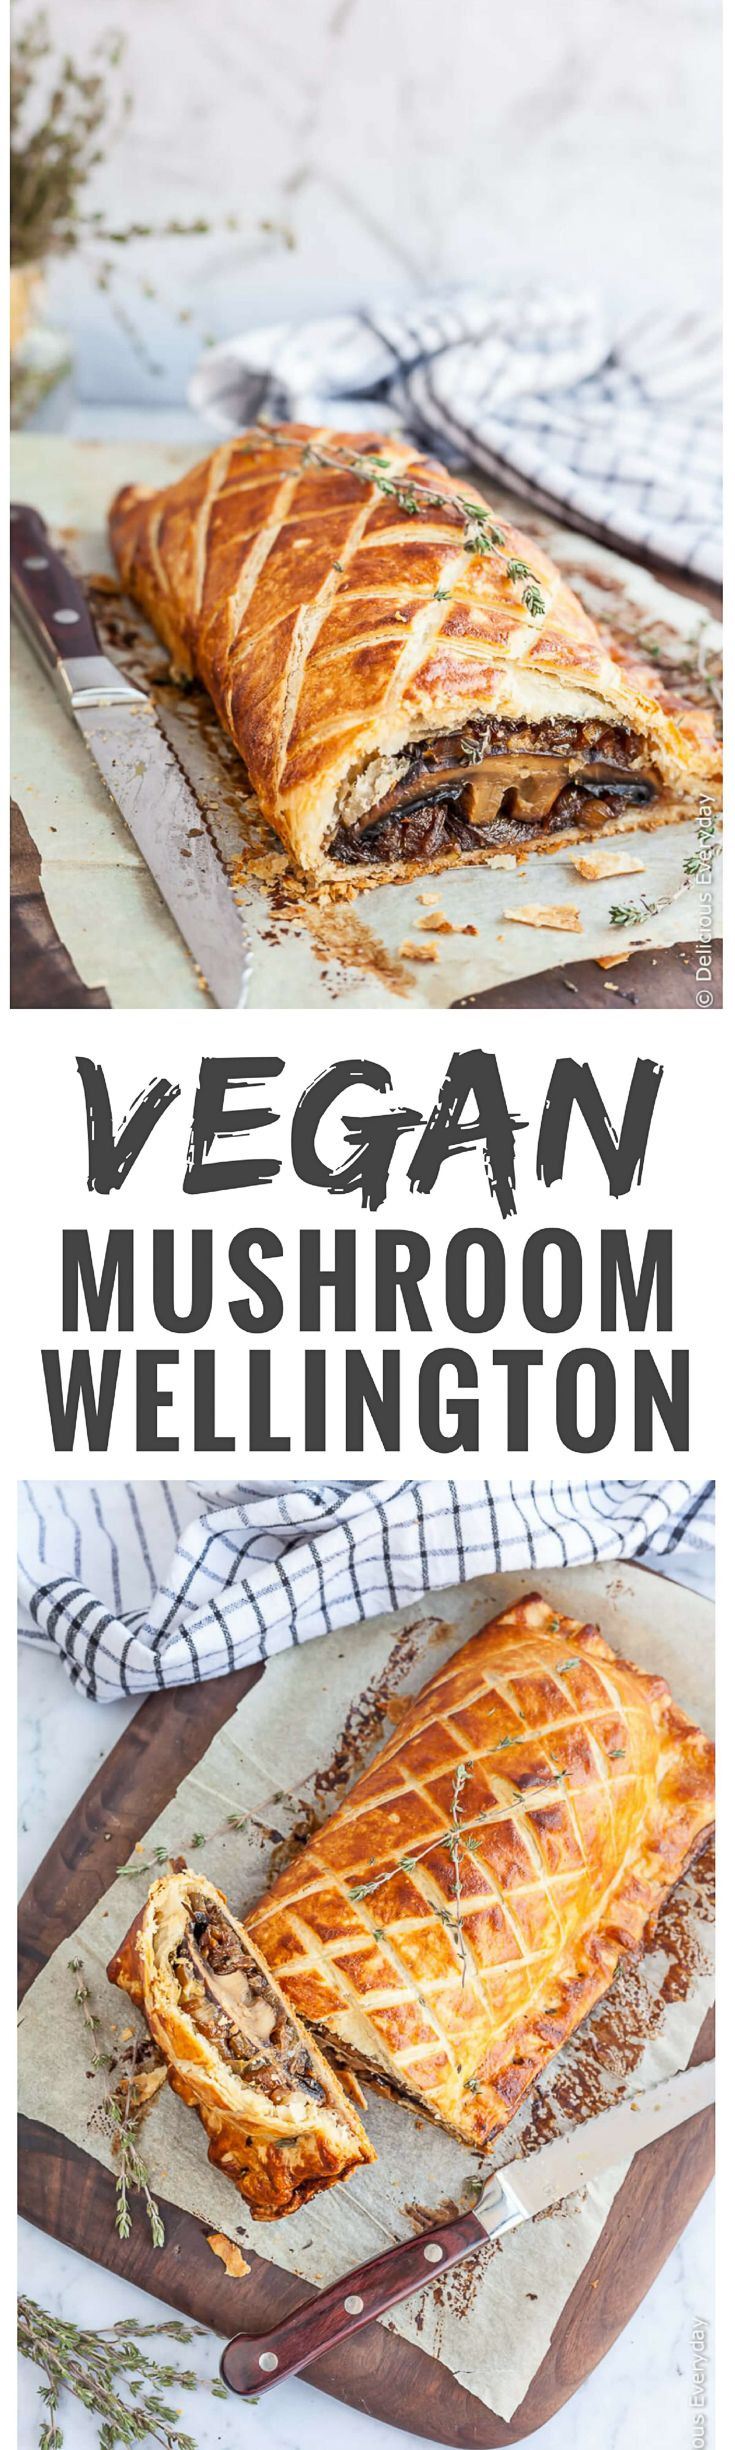 Flaky, Golden and Delicious this Vegan Mushroom Wellington is sure to take center stage at your Christmas feast. Learn how to make this vegetable wellington. via @deliciouseveryday